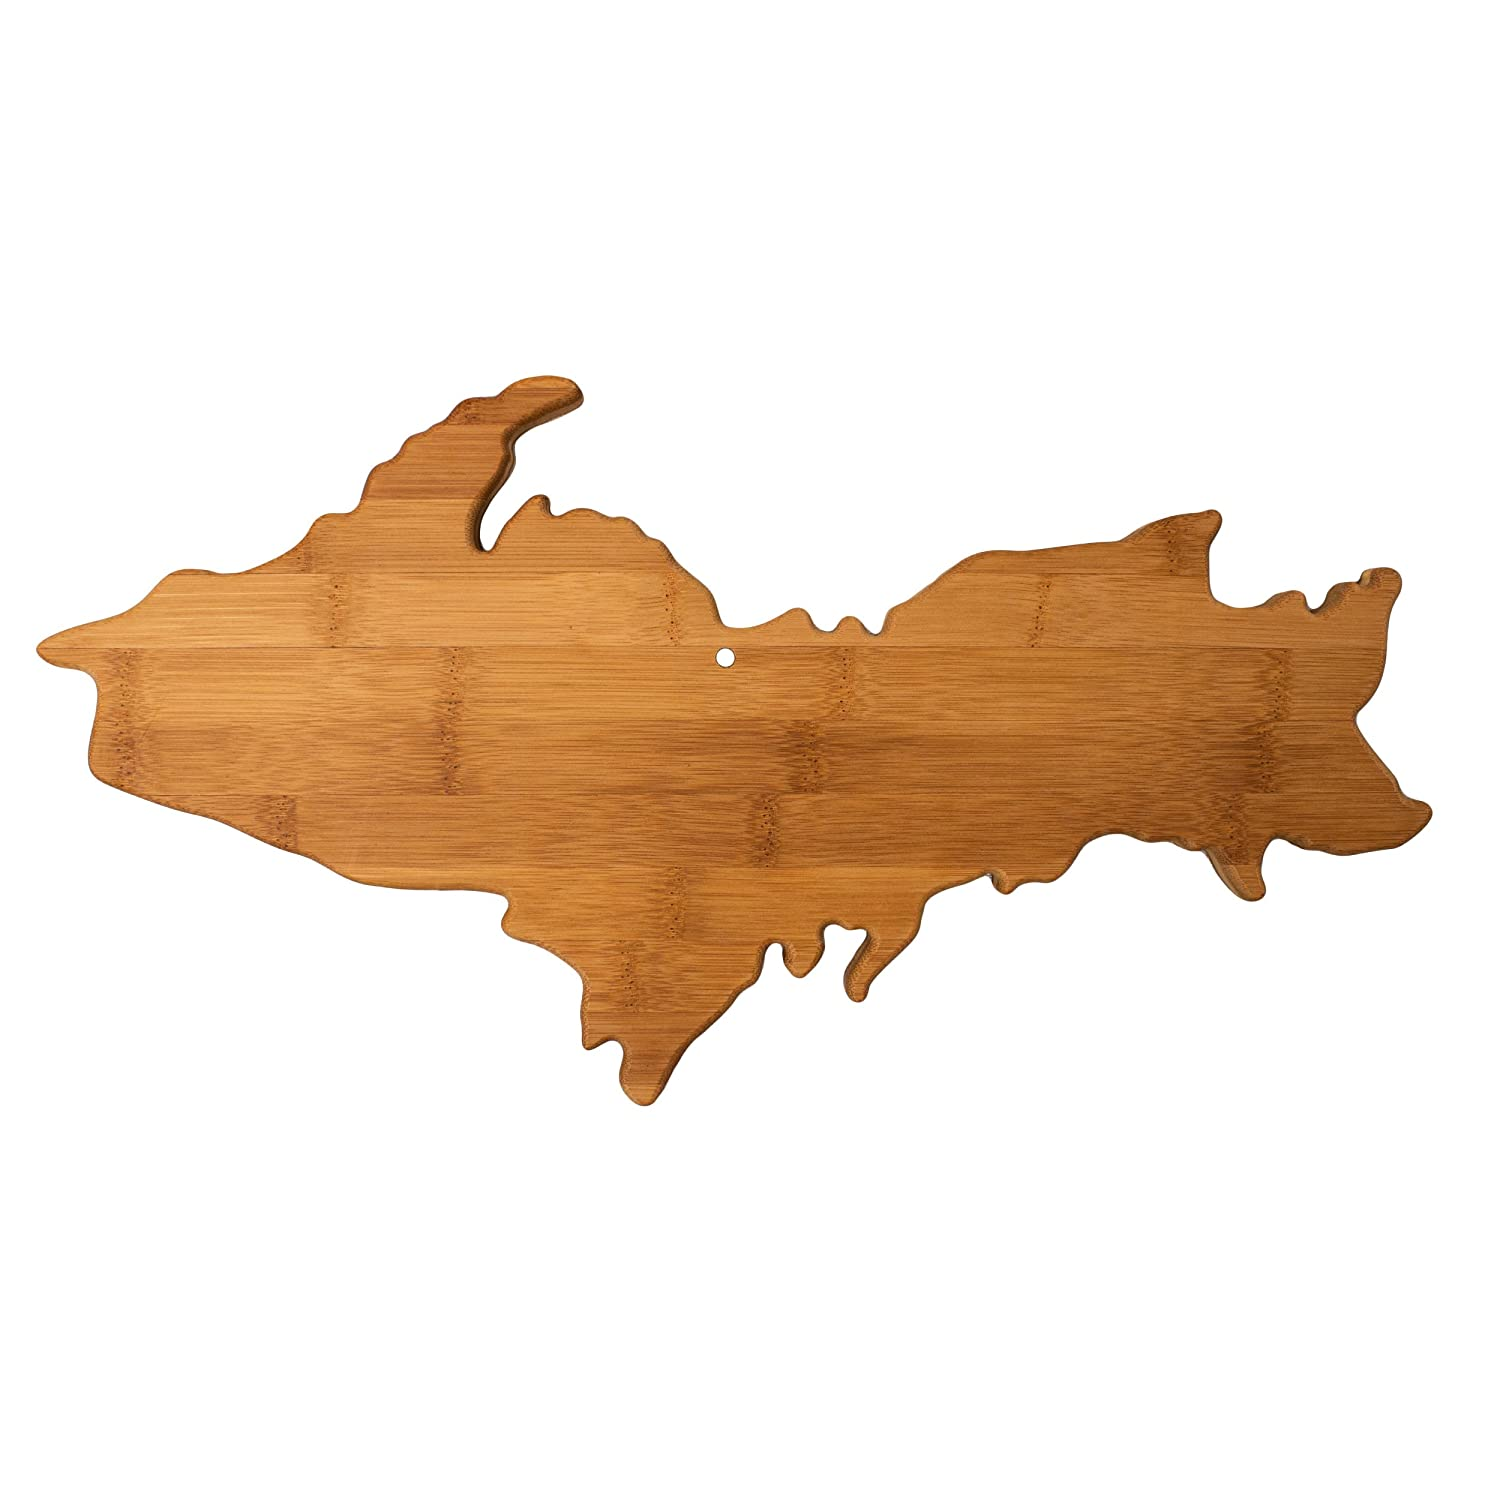 Totally Bamboo 20-8009UP Upper Peninsula Shaped Bamboo Serving & Cutting Board, Michigan